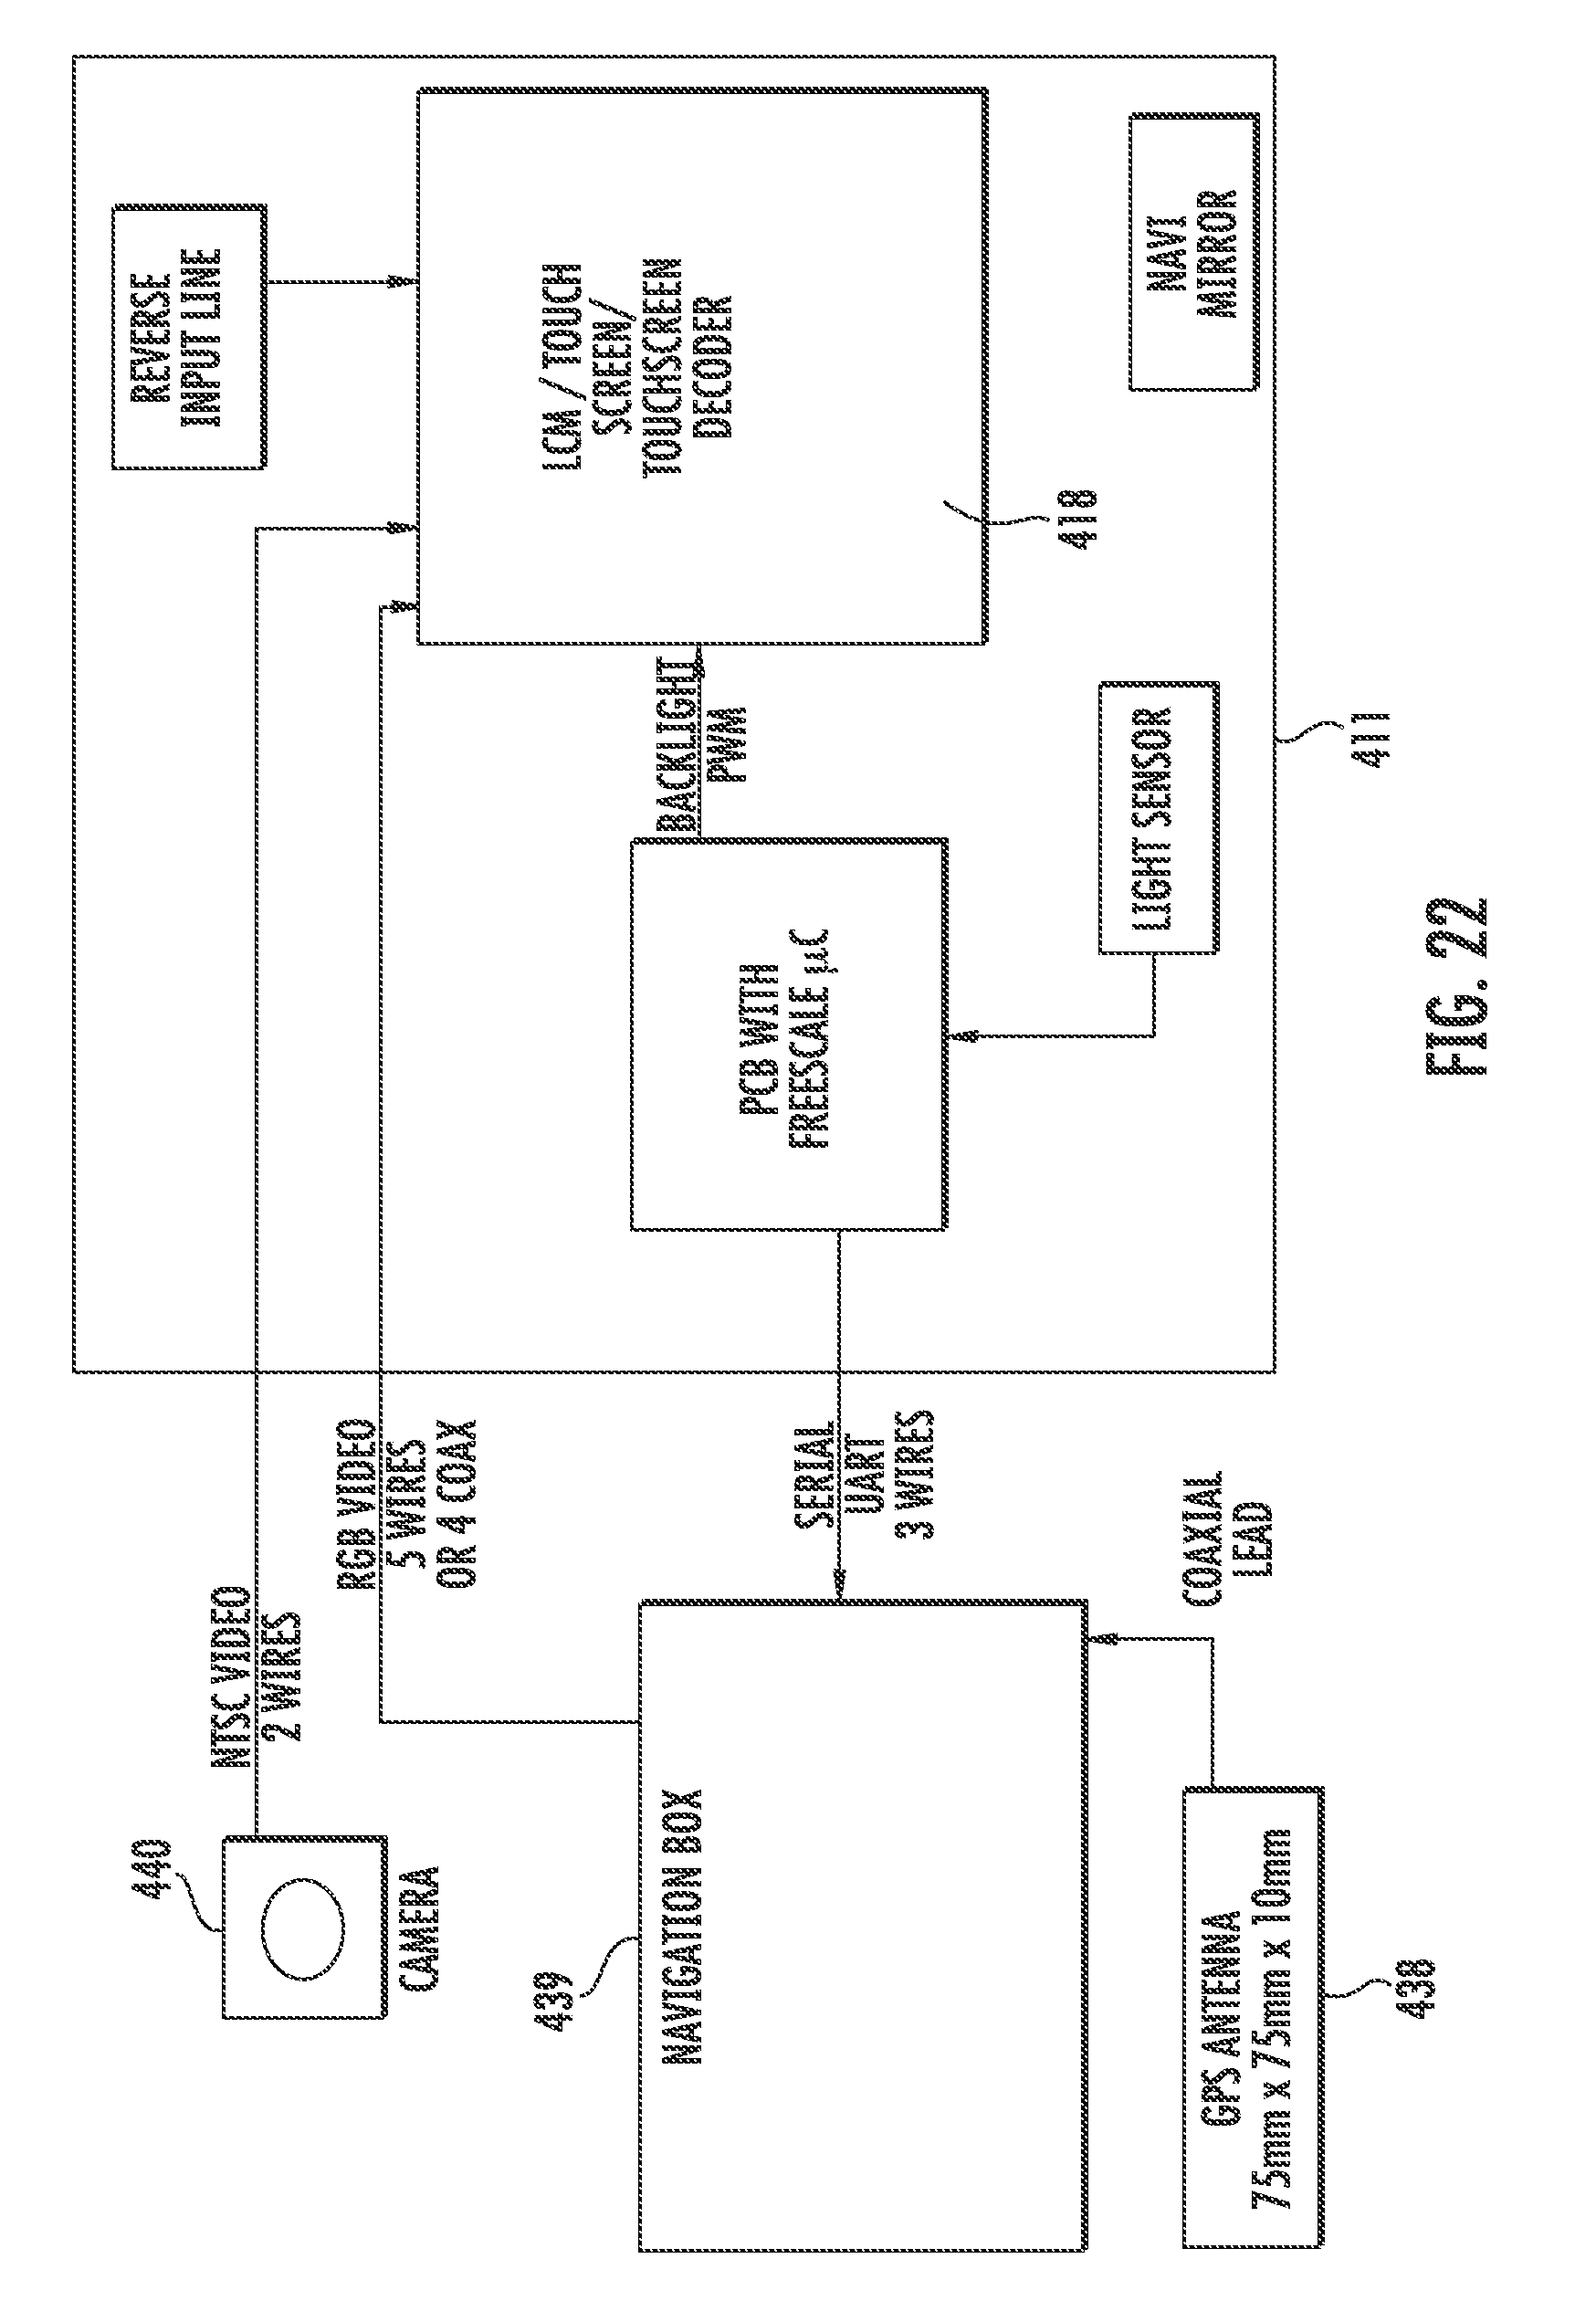 hight resolution of patent us 8 508 383 b2 circuit diagram depicts the 1975 datsun 610 transistor ignition unit